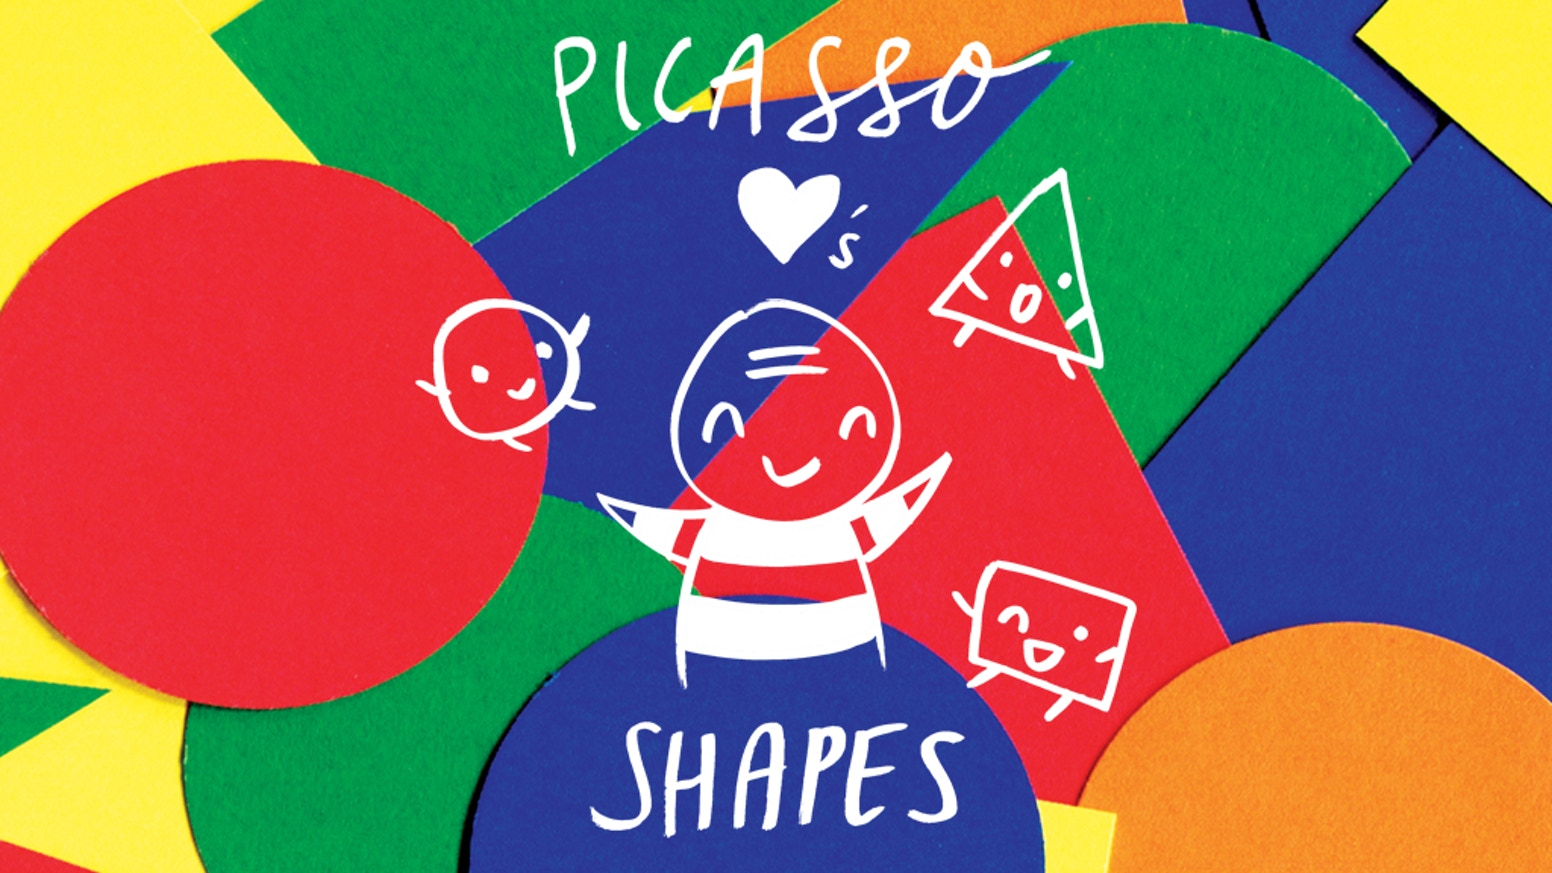 4c7443c827d4 Picasso Loves Shapes by Judiee — Kickstarter